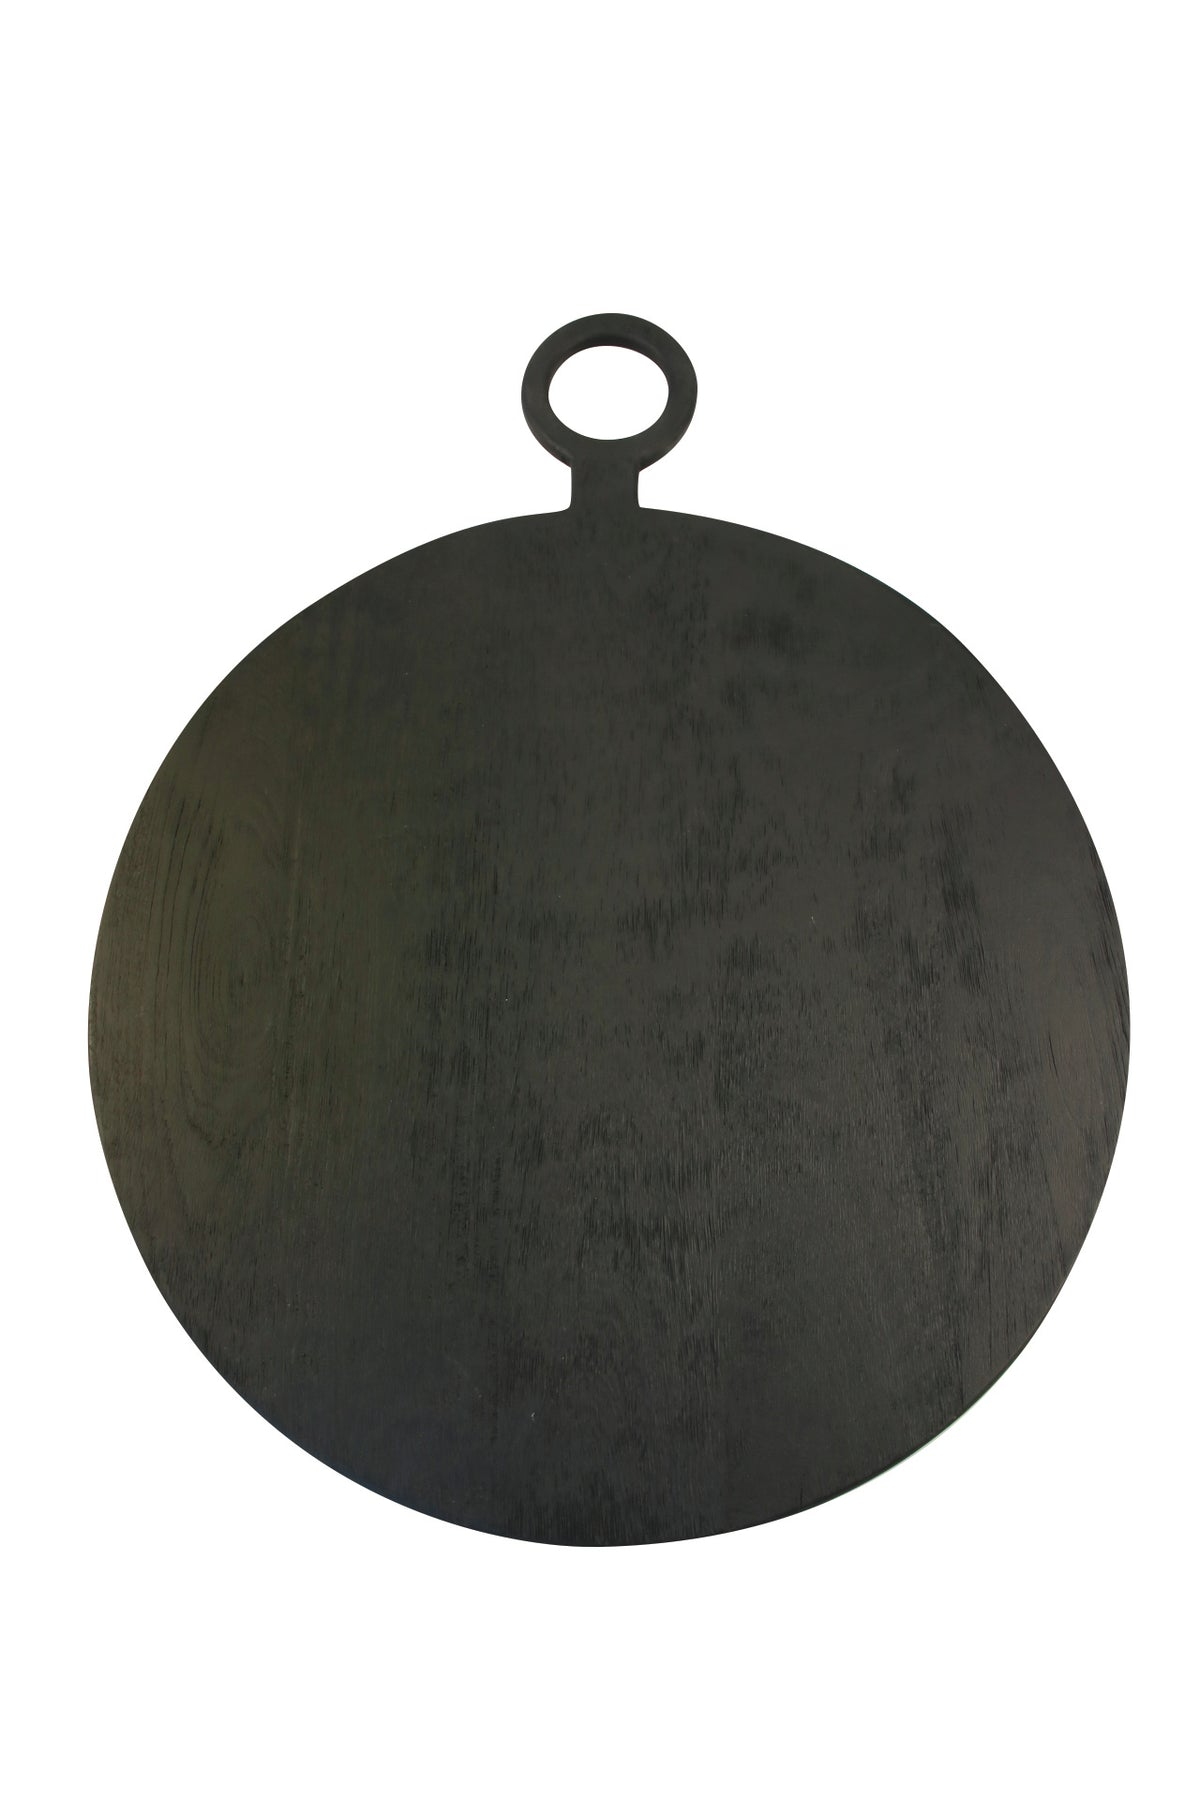 Ebony Mango Wood Round Board, Extra Large